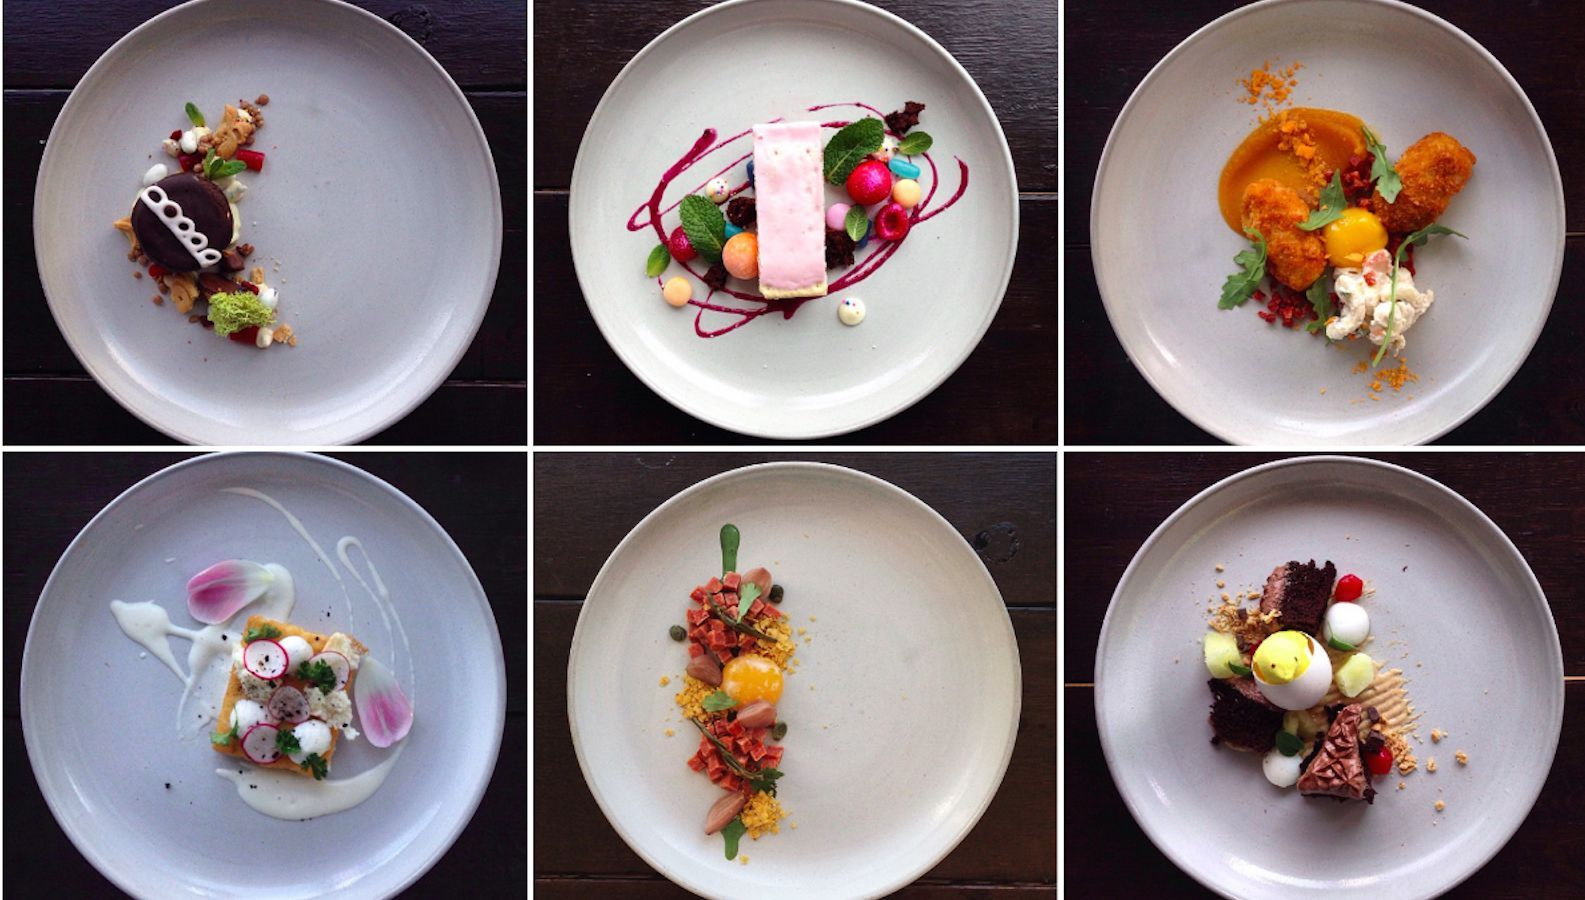 Photos: Instagram chef parodies Michelin-style plating with junk food  masterpieces